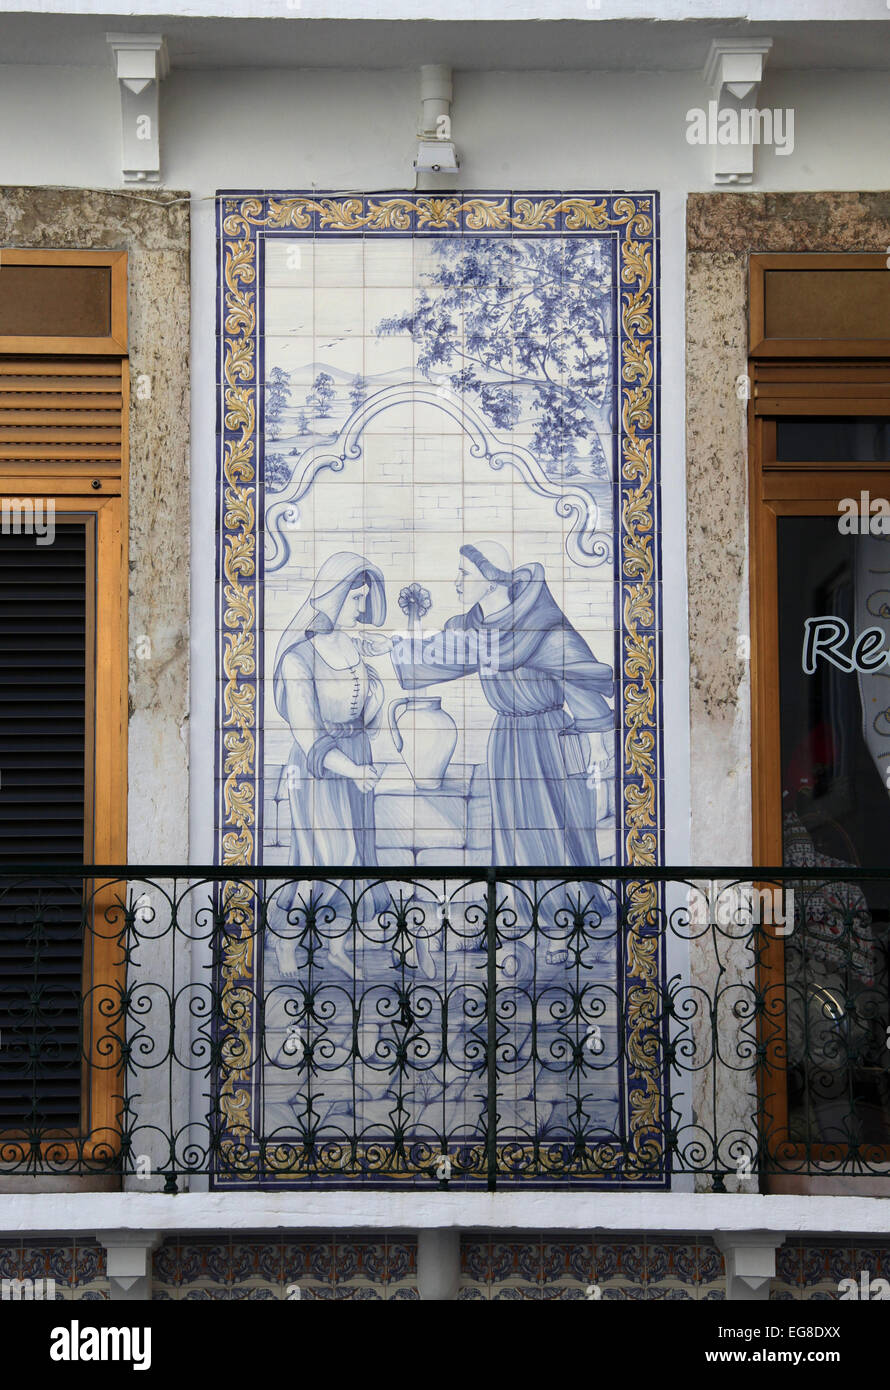 Azulejos on an Alfama Cafe building in Lisbon - Stock Image